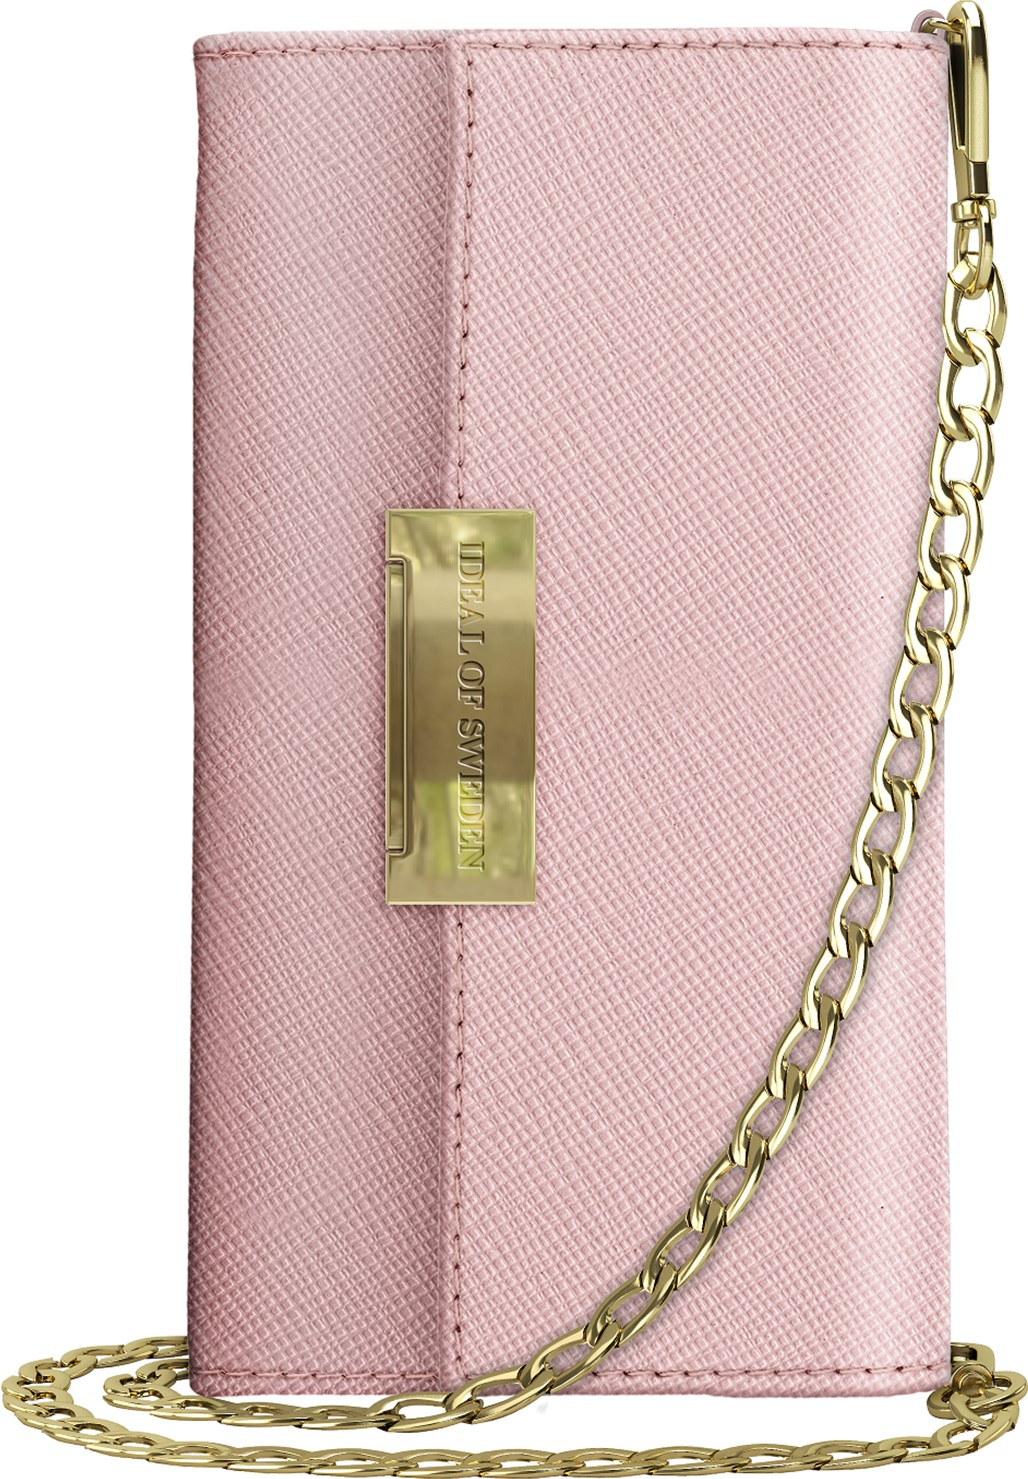 iDeal of Sweden Ideal Kensington Cross Body Clutch Iphone X/Xs Pink